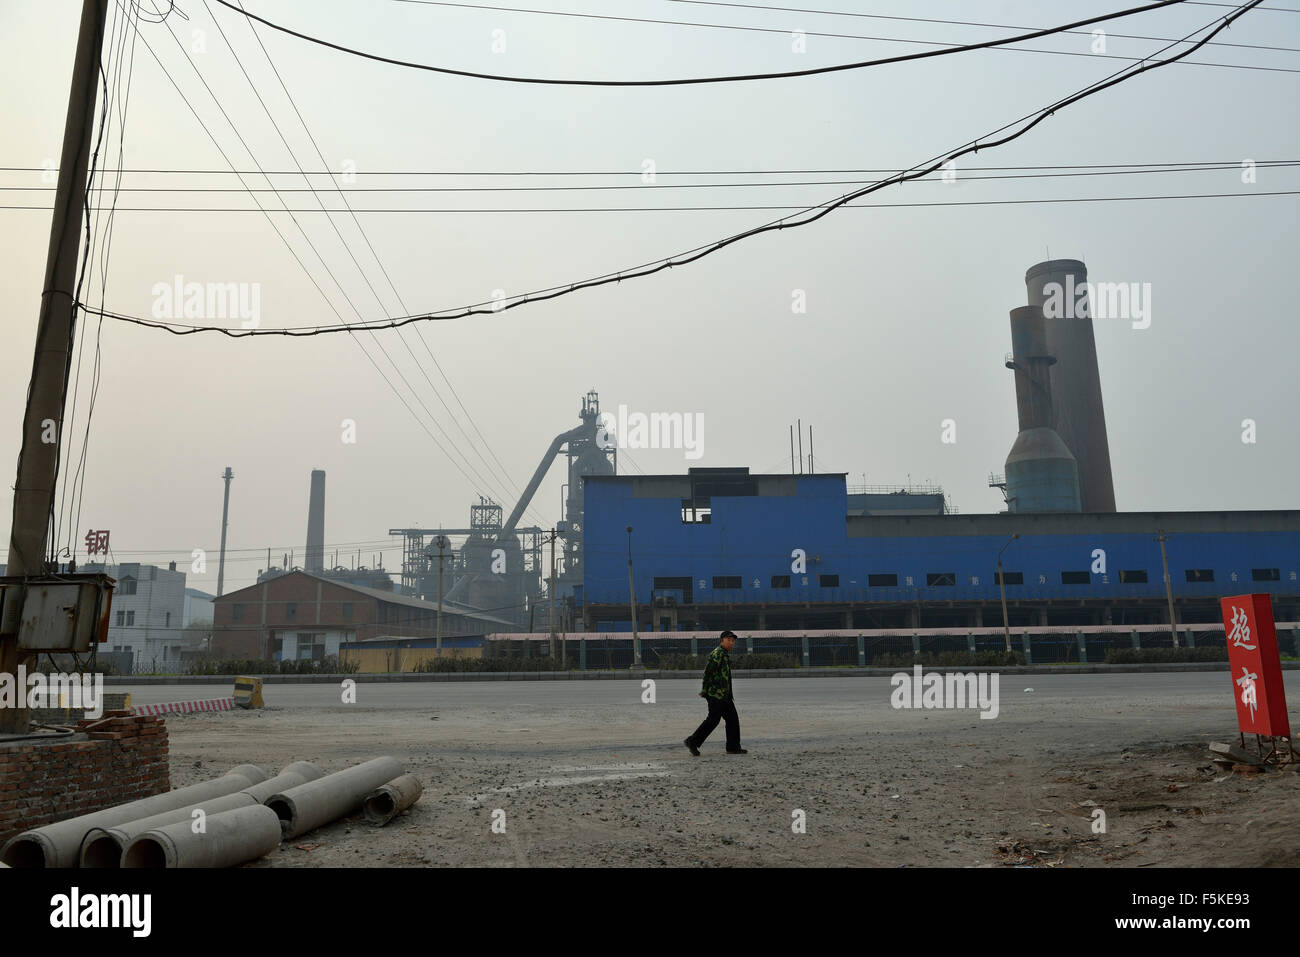 losed steel factory in Fengnan, Tangshan, Hebei province, China. 25-Mar-2014 - Stock Image